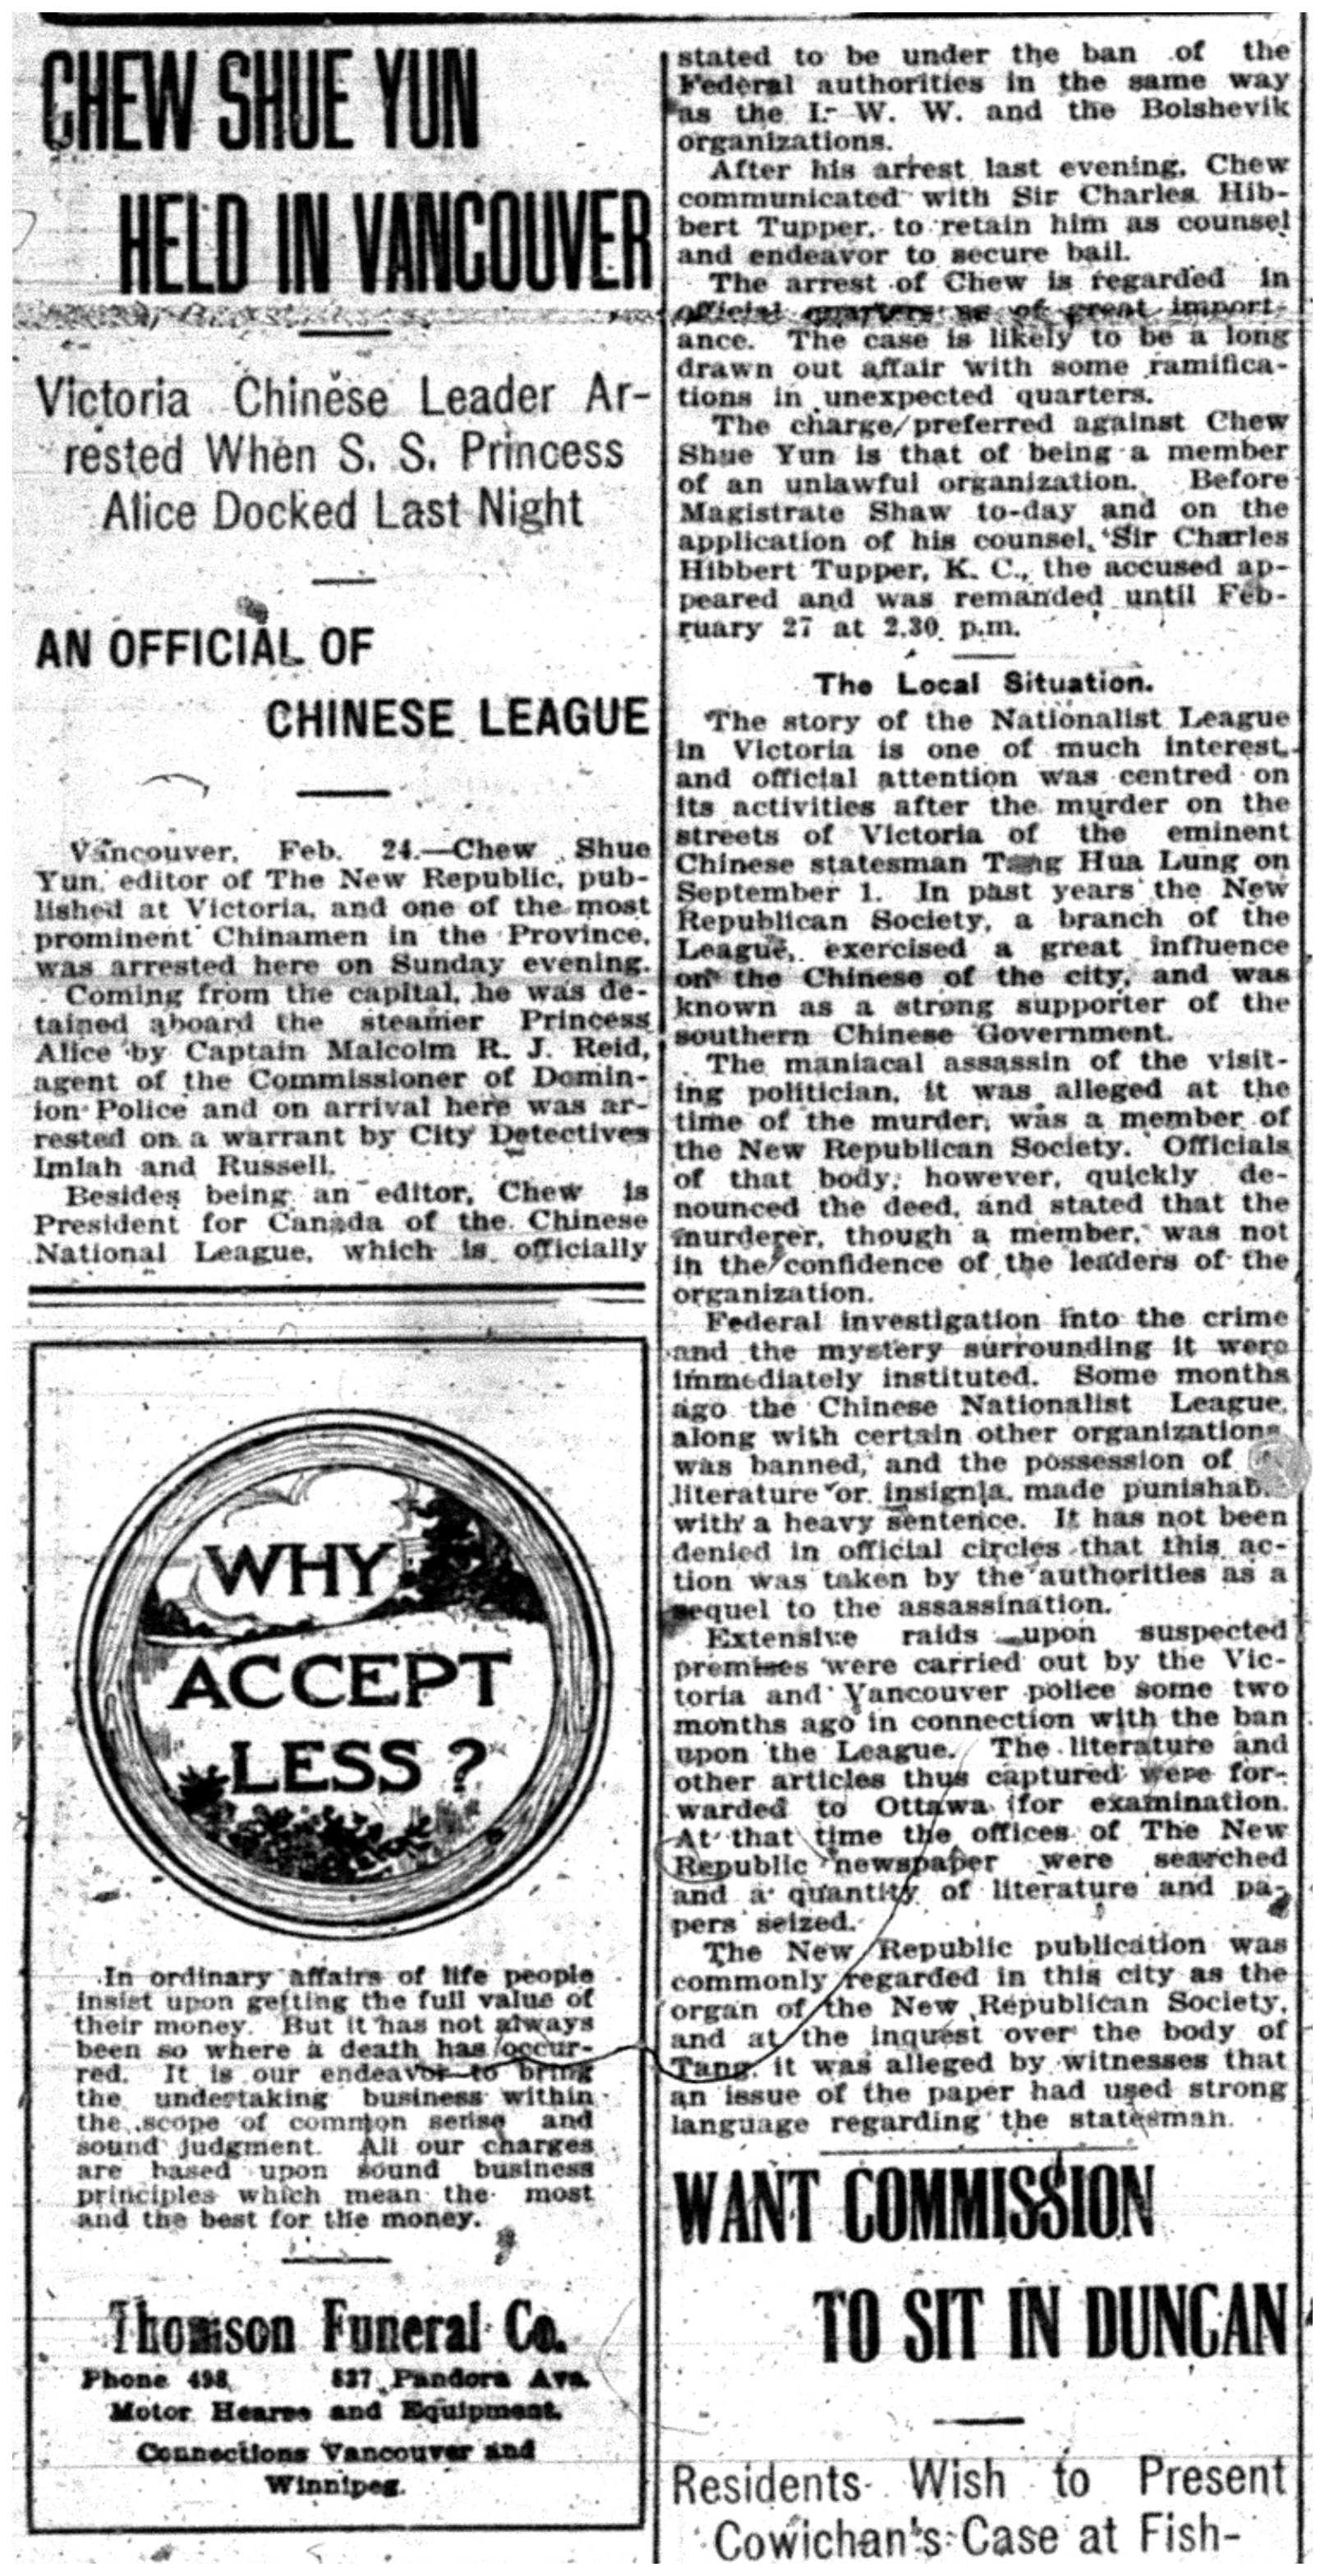 """Chew Shue Yun Held in Vancouver"""